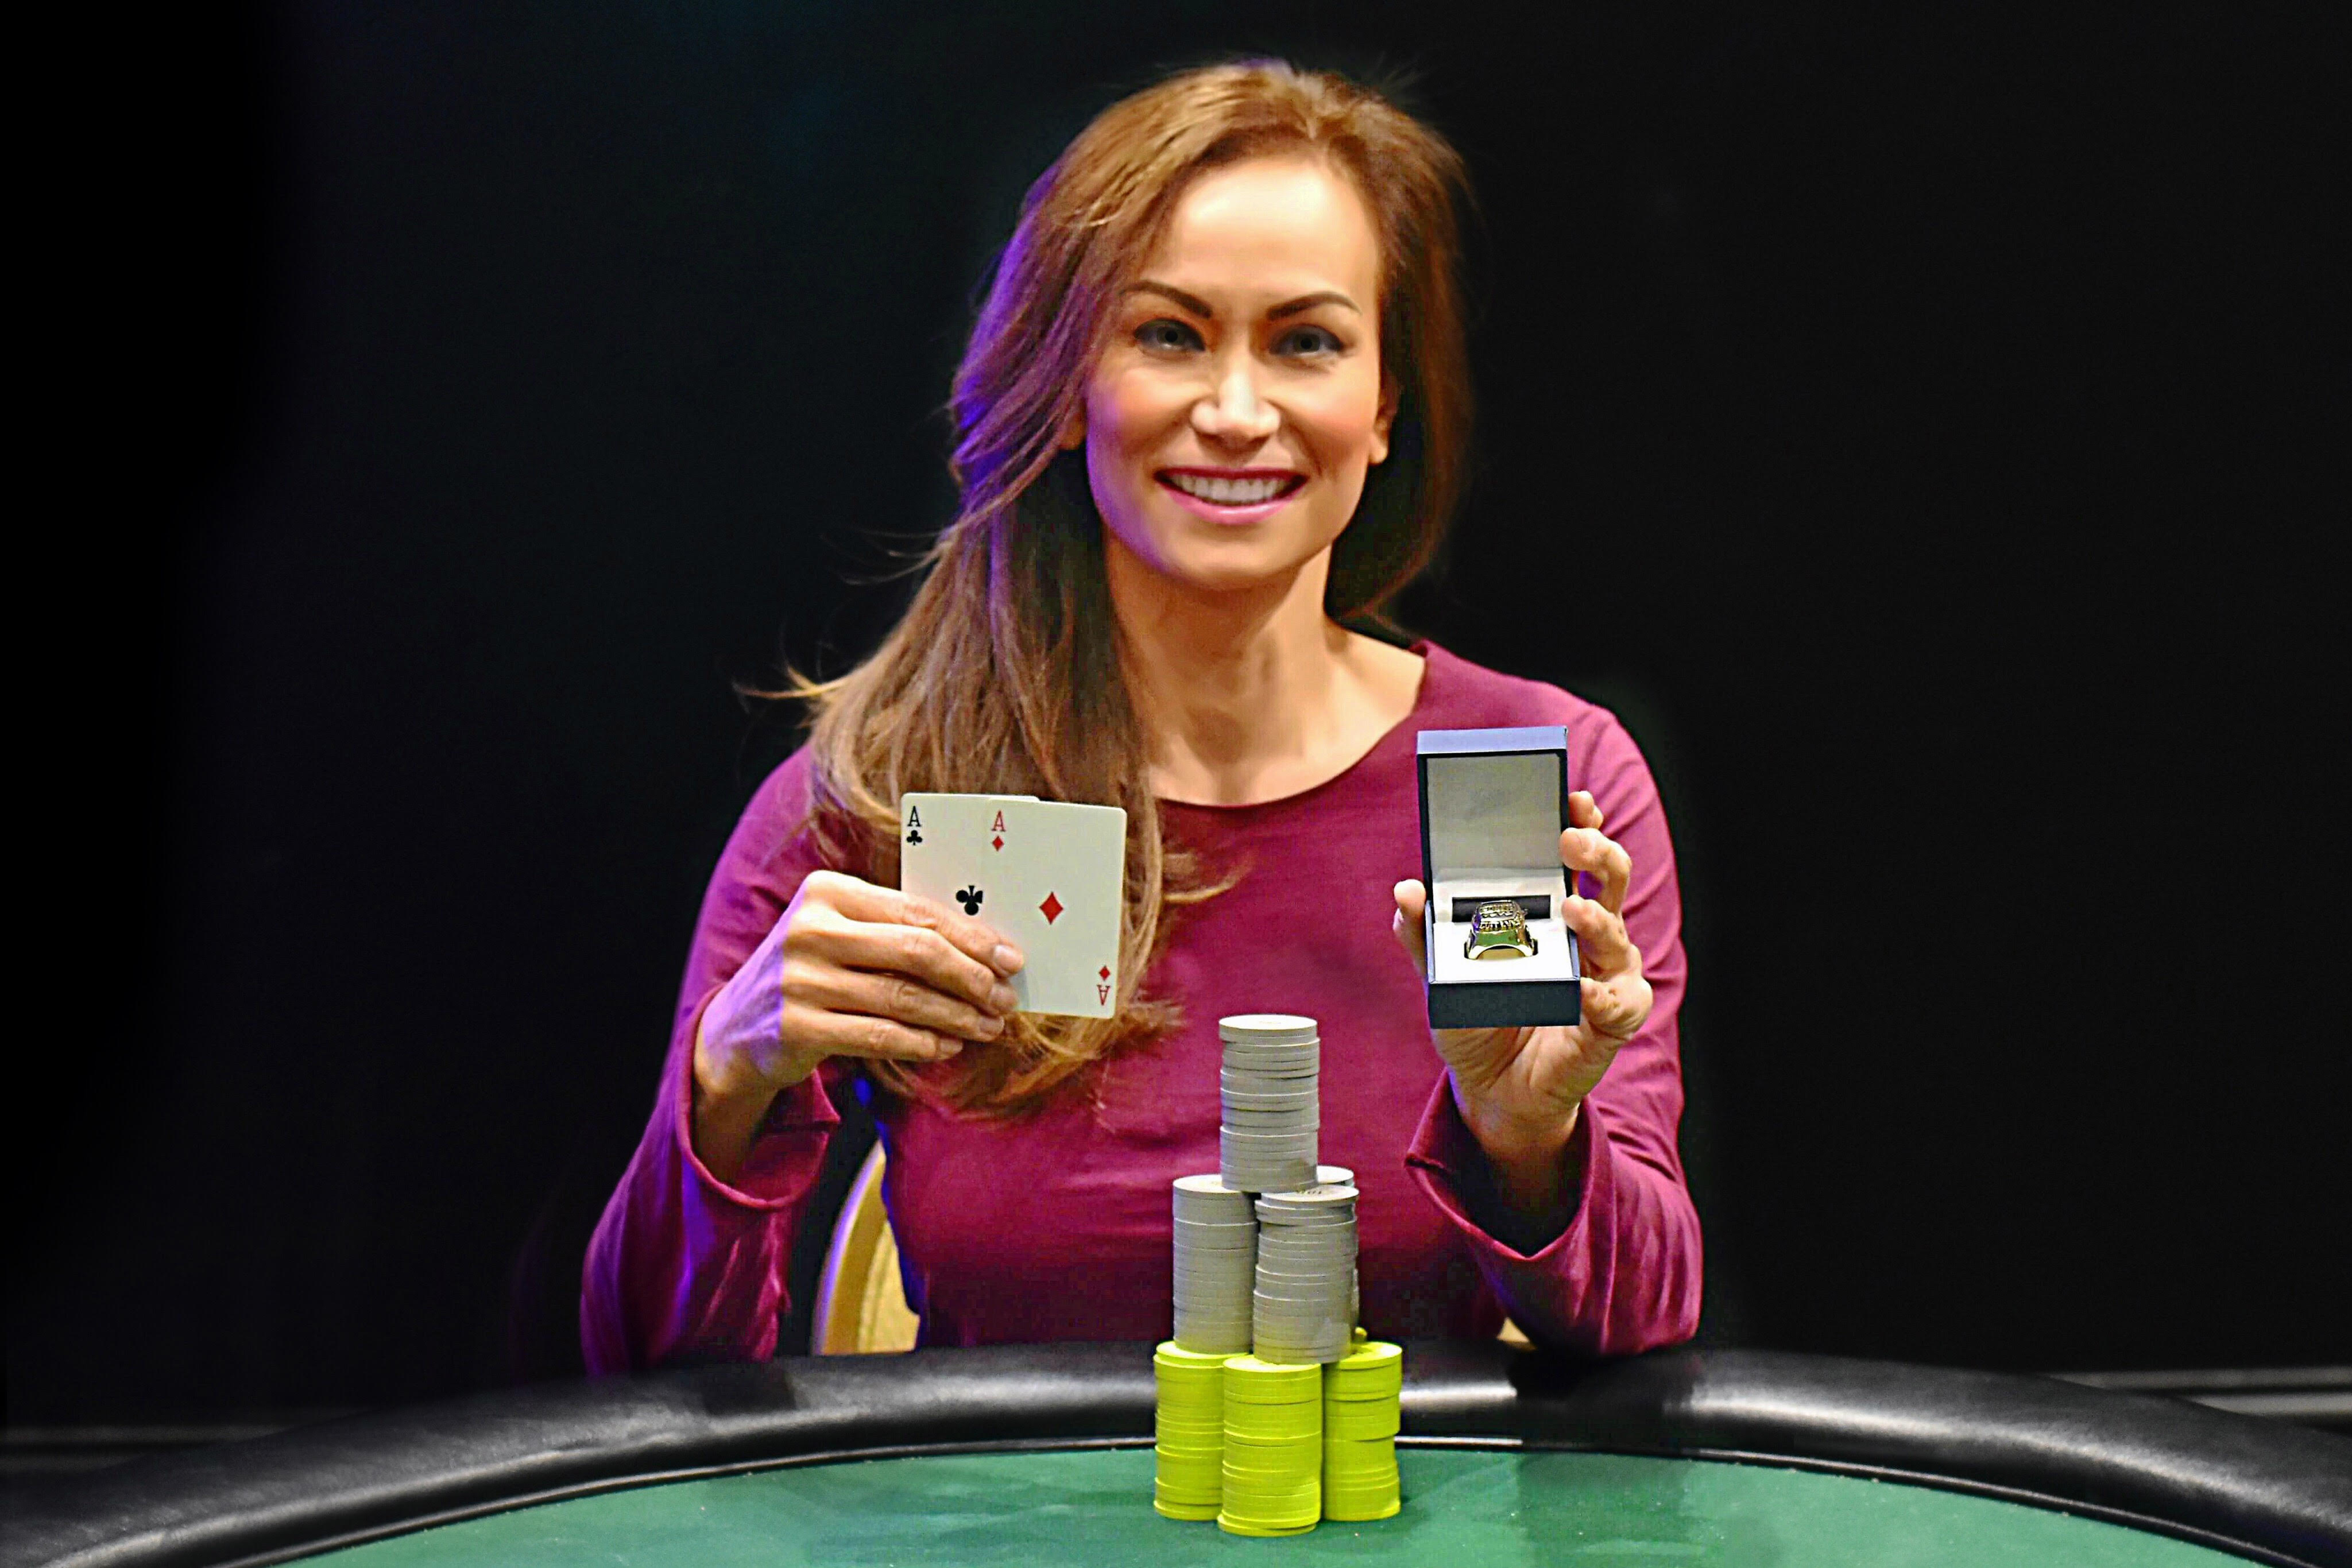 Poker woman news roulette doritos where to buy